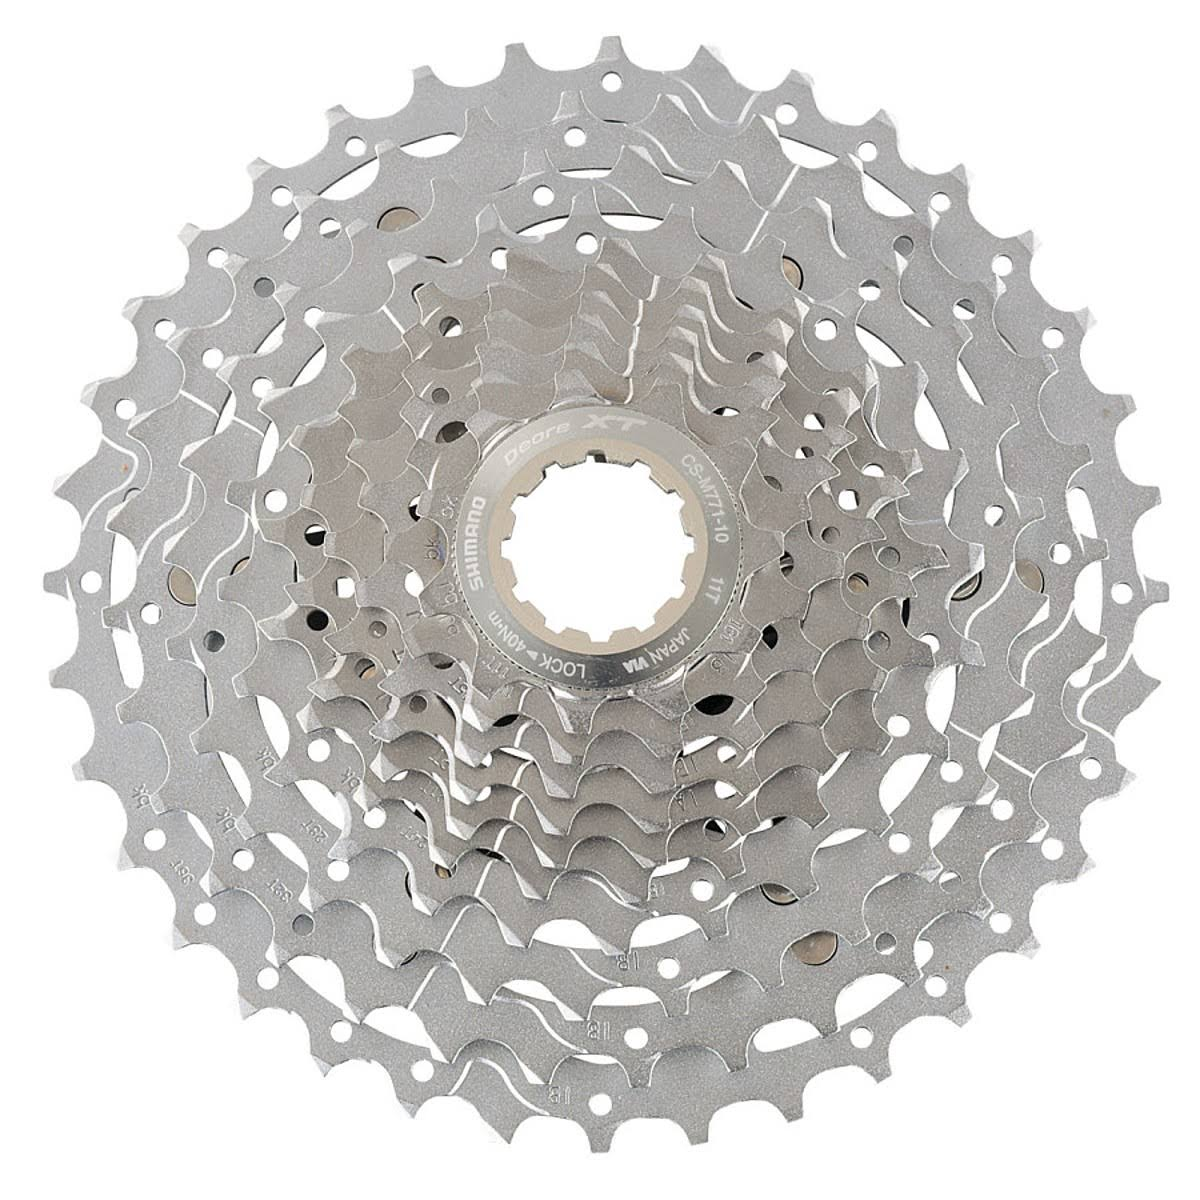 Shimano XT M771 11-36 Bicycle Cassette - 10 Speed, Silver